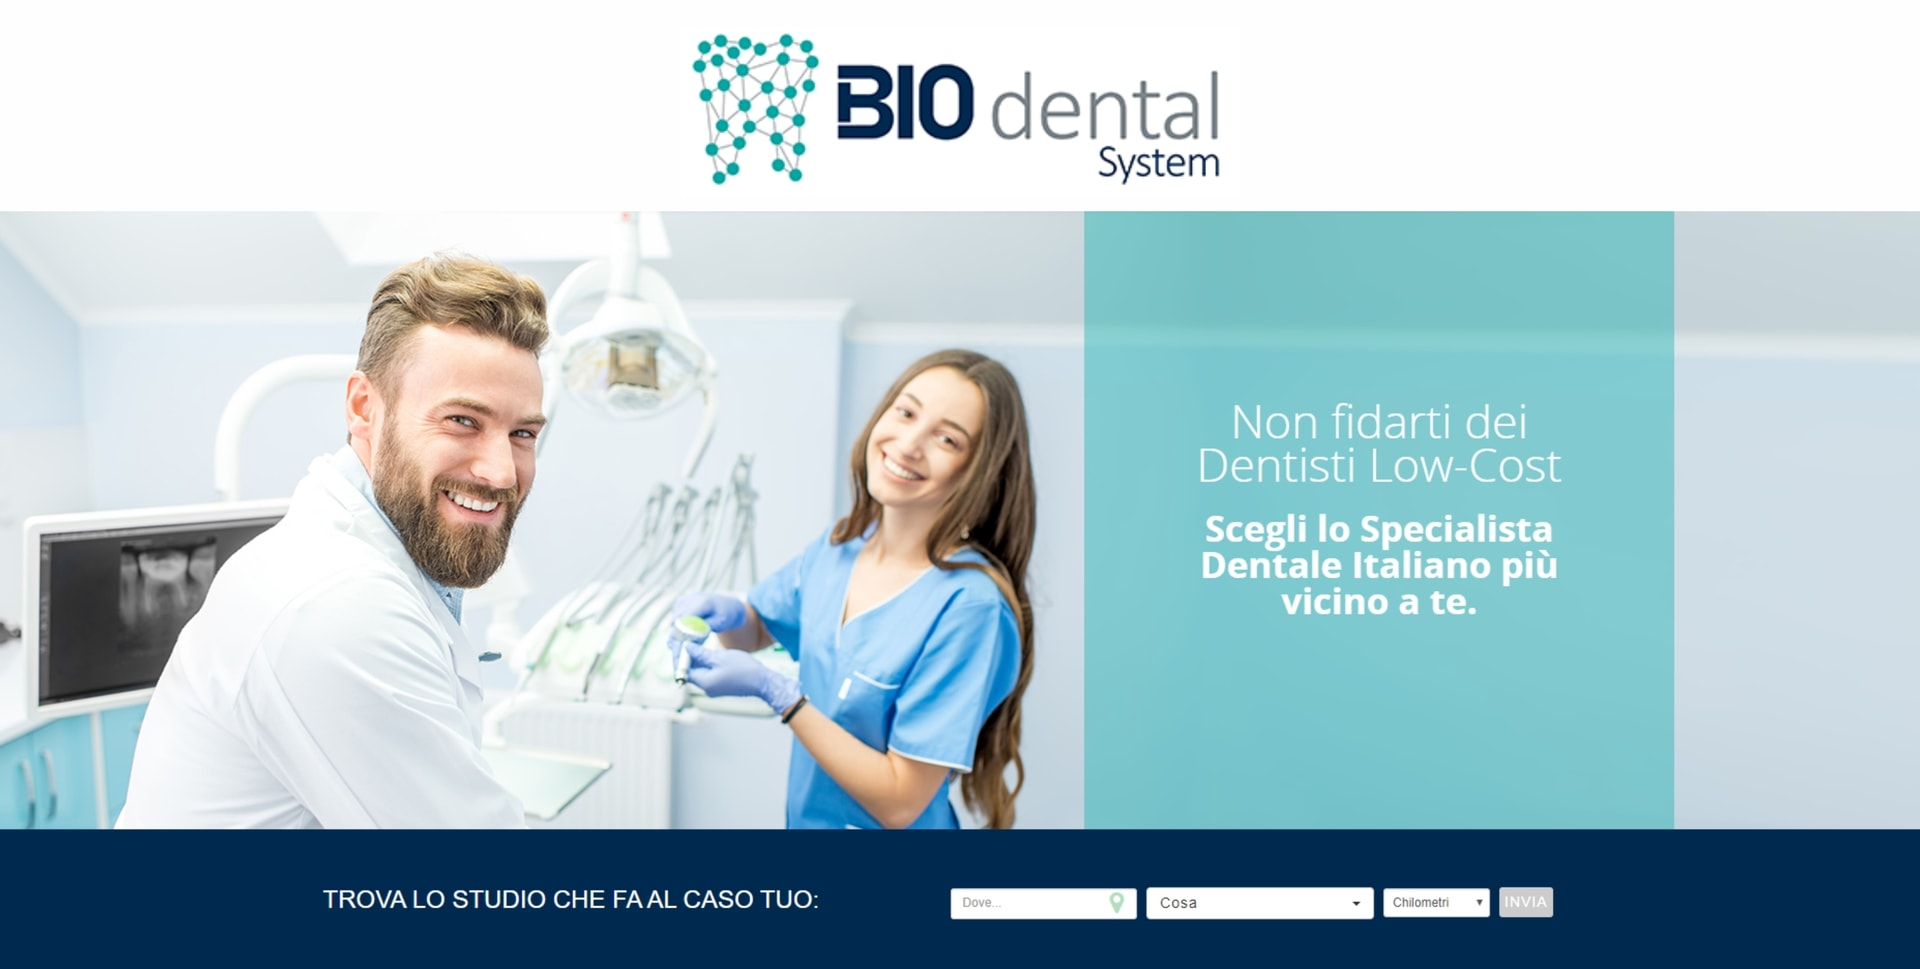 BioDental System